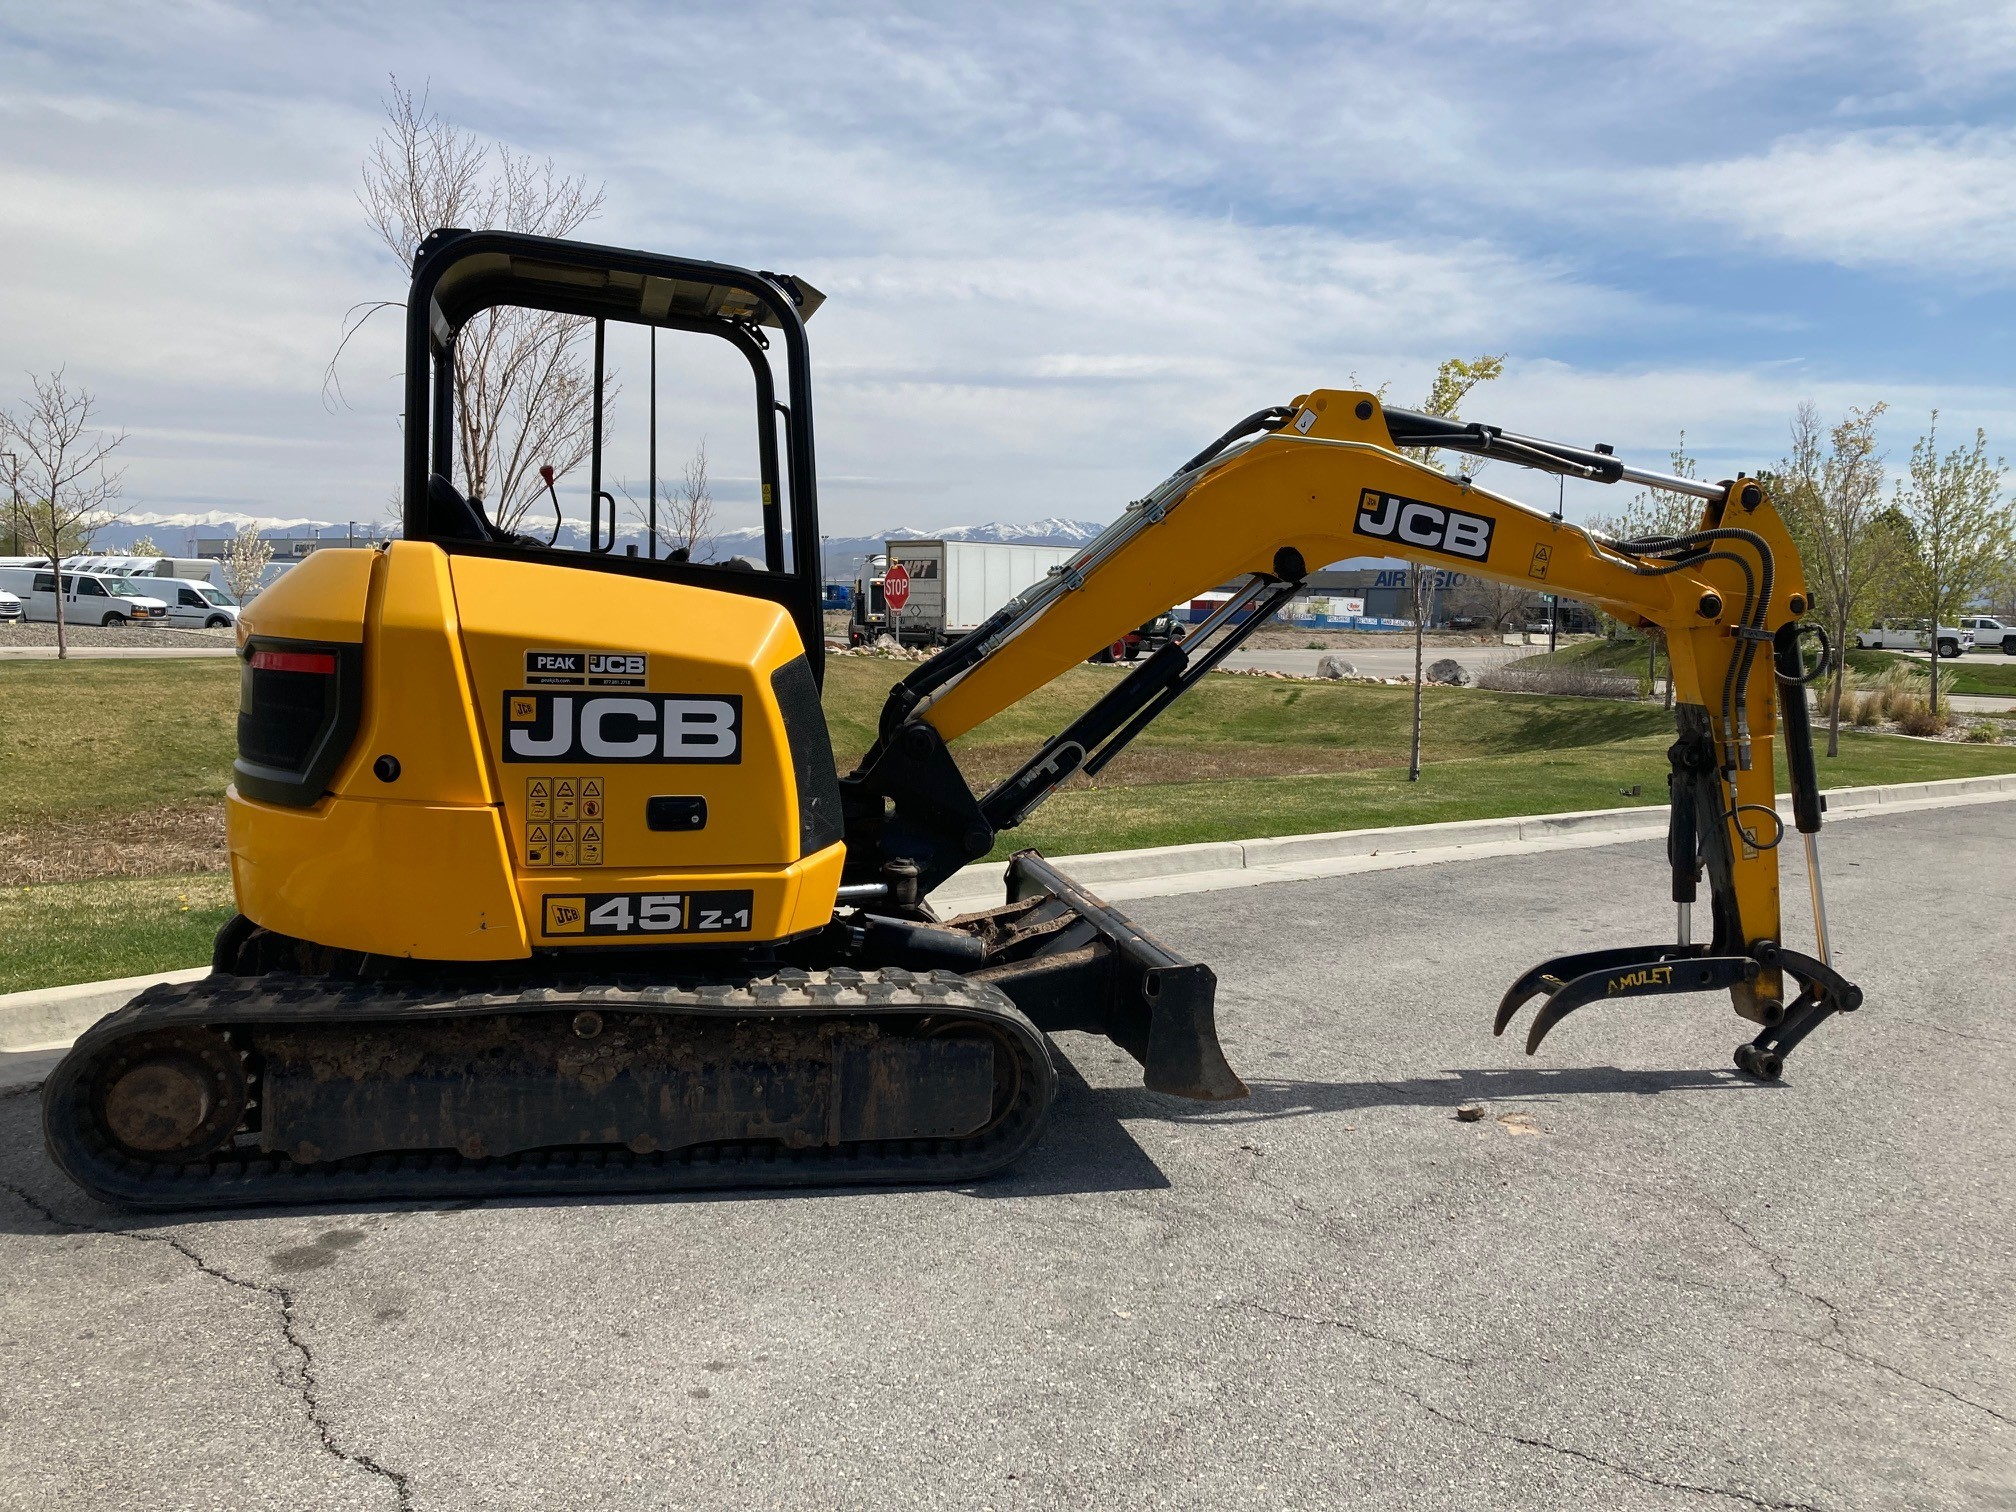 Used, 2016, JCB, 45Z-1, Excavators